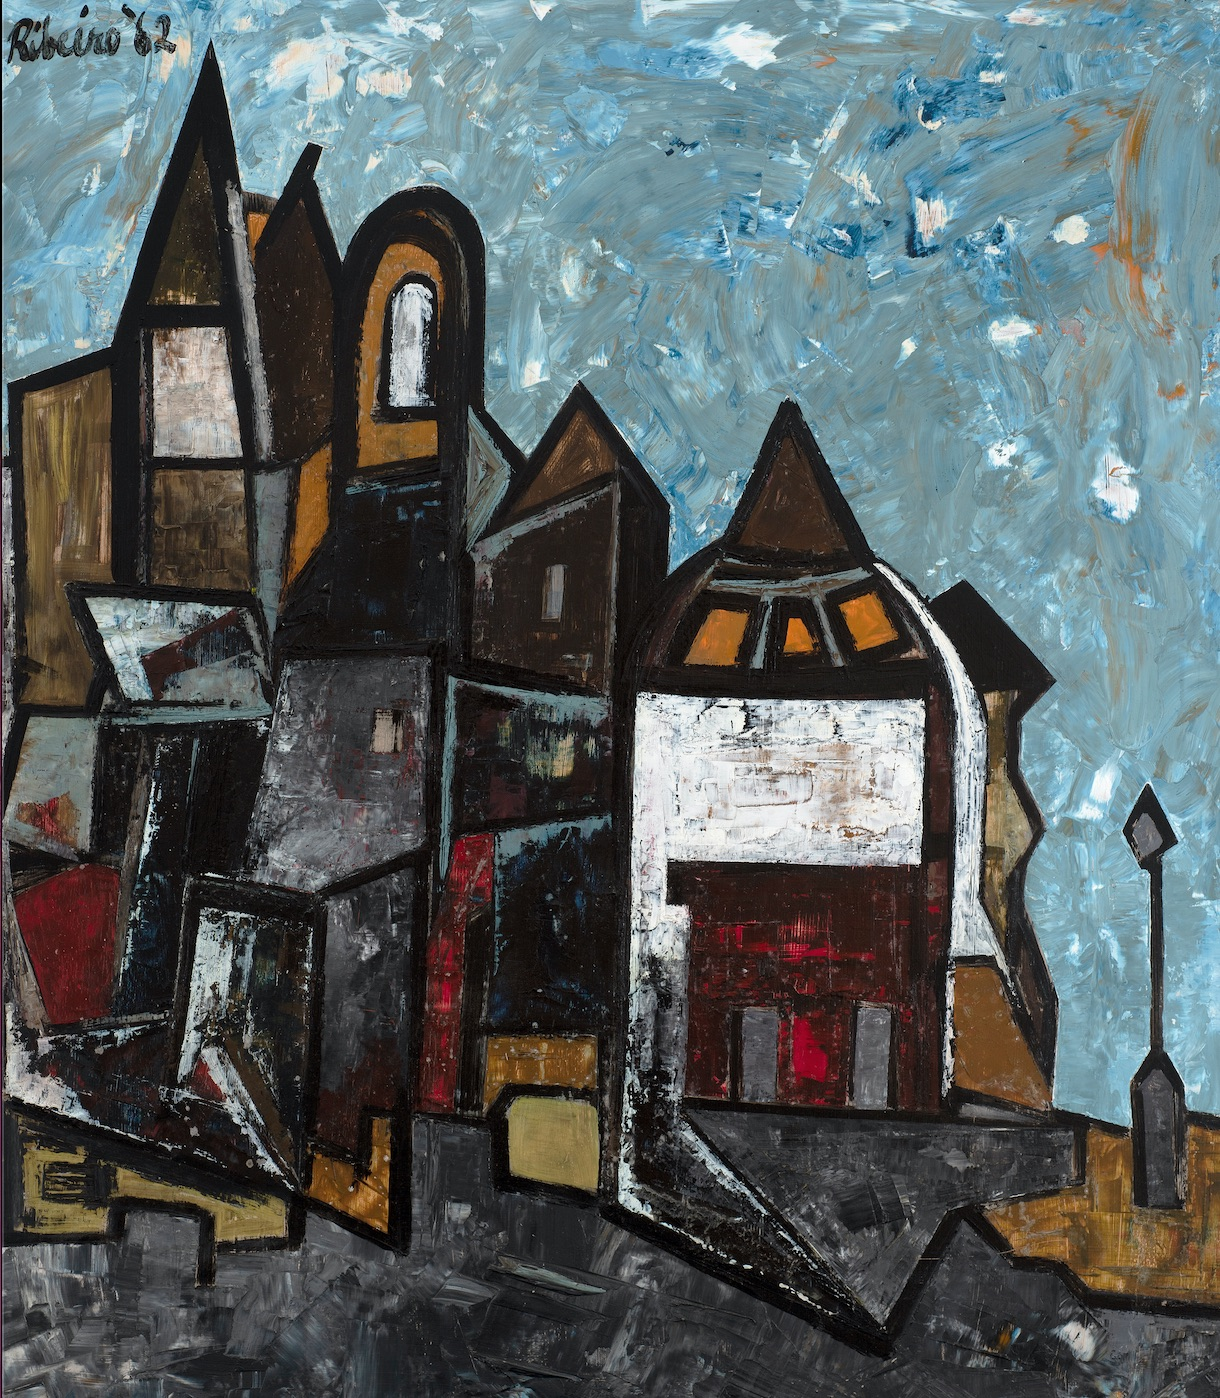 LANCELOT RIBEIRO (1933-2011) Strange Town, 1962 Oil on board Signed and dated upper left 91.5 x 80 cm 36 1/8 x 31 1/2 in PROVENANCE Purchased from Piccadilly Gallery, London 25.3.1963 by the Leicester Education Committee for £25.0.0 (original invoice on file) Golding, Young and Mawer, 150th Anniversary Auction, 4 September 2014 Acquired from the above by Roderick Burton, Caistor, Lincs. Hemswell Antiques Centre Grosvenor Gallery, acquired from the above